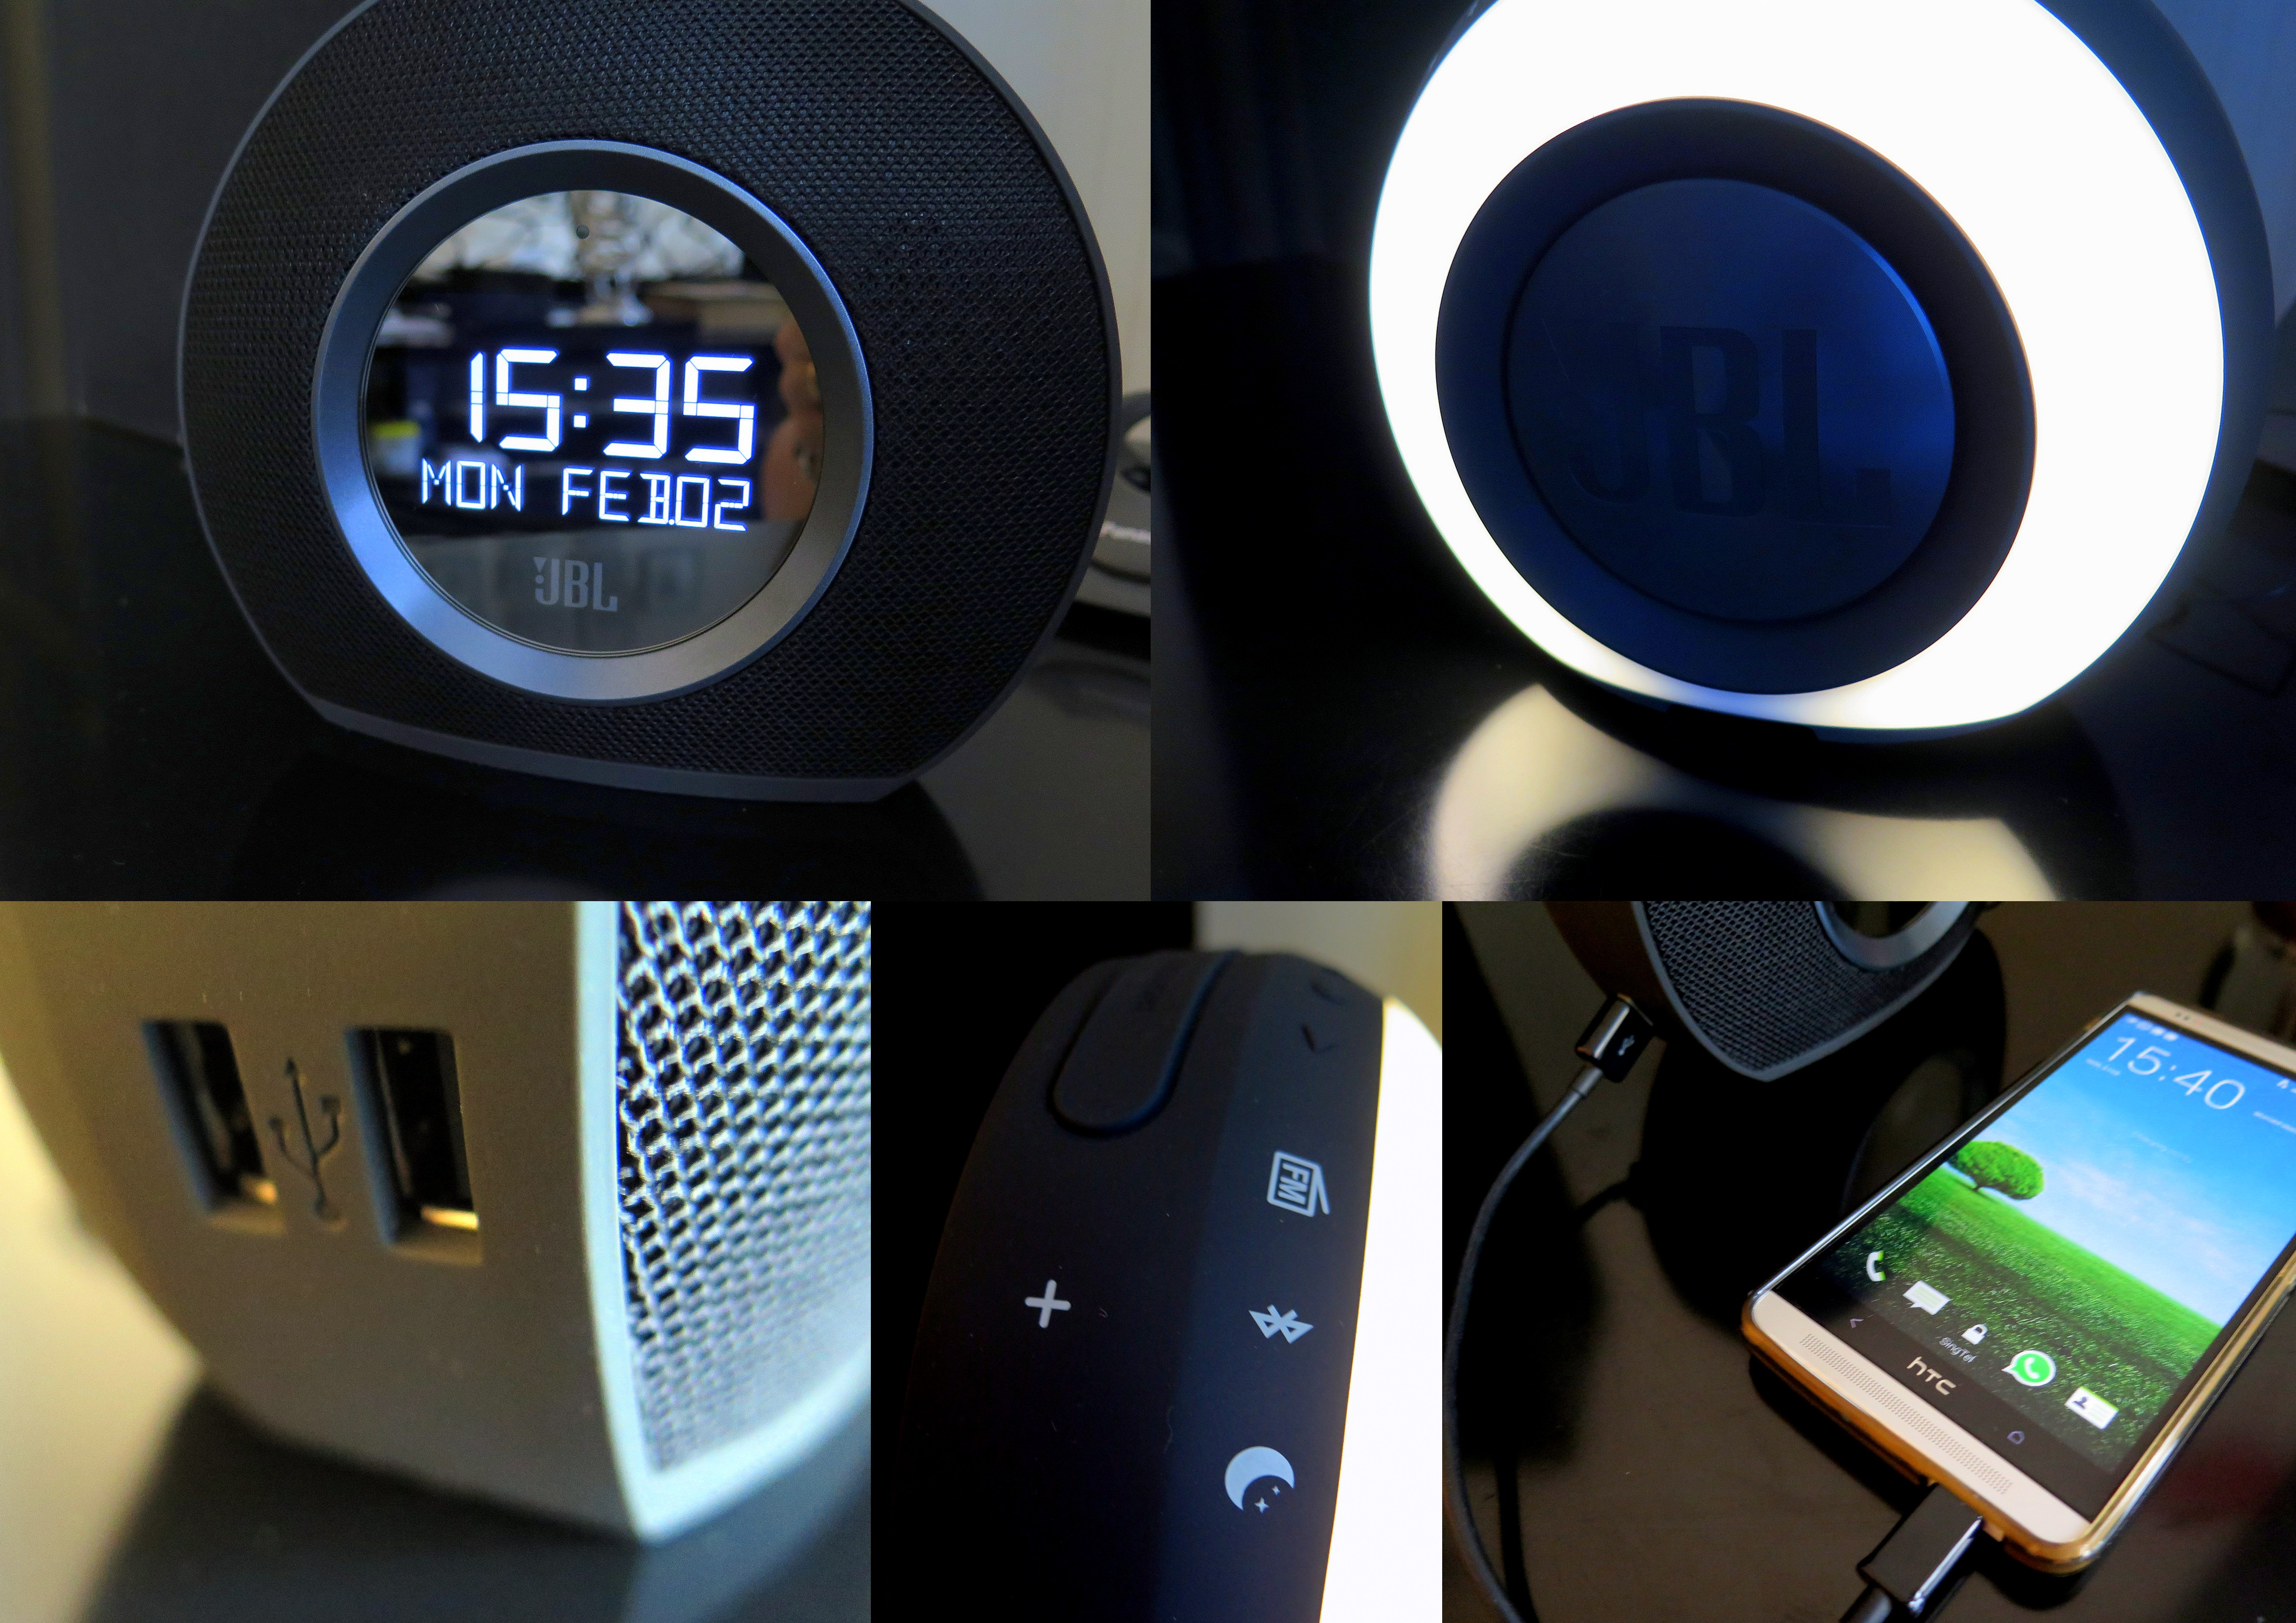 radio alarm clock no light 11 alarm clocks for starting the day right core77 digital fm radio. Black Bedroom Furniture Sets. Home Design Ideas